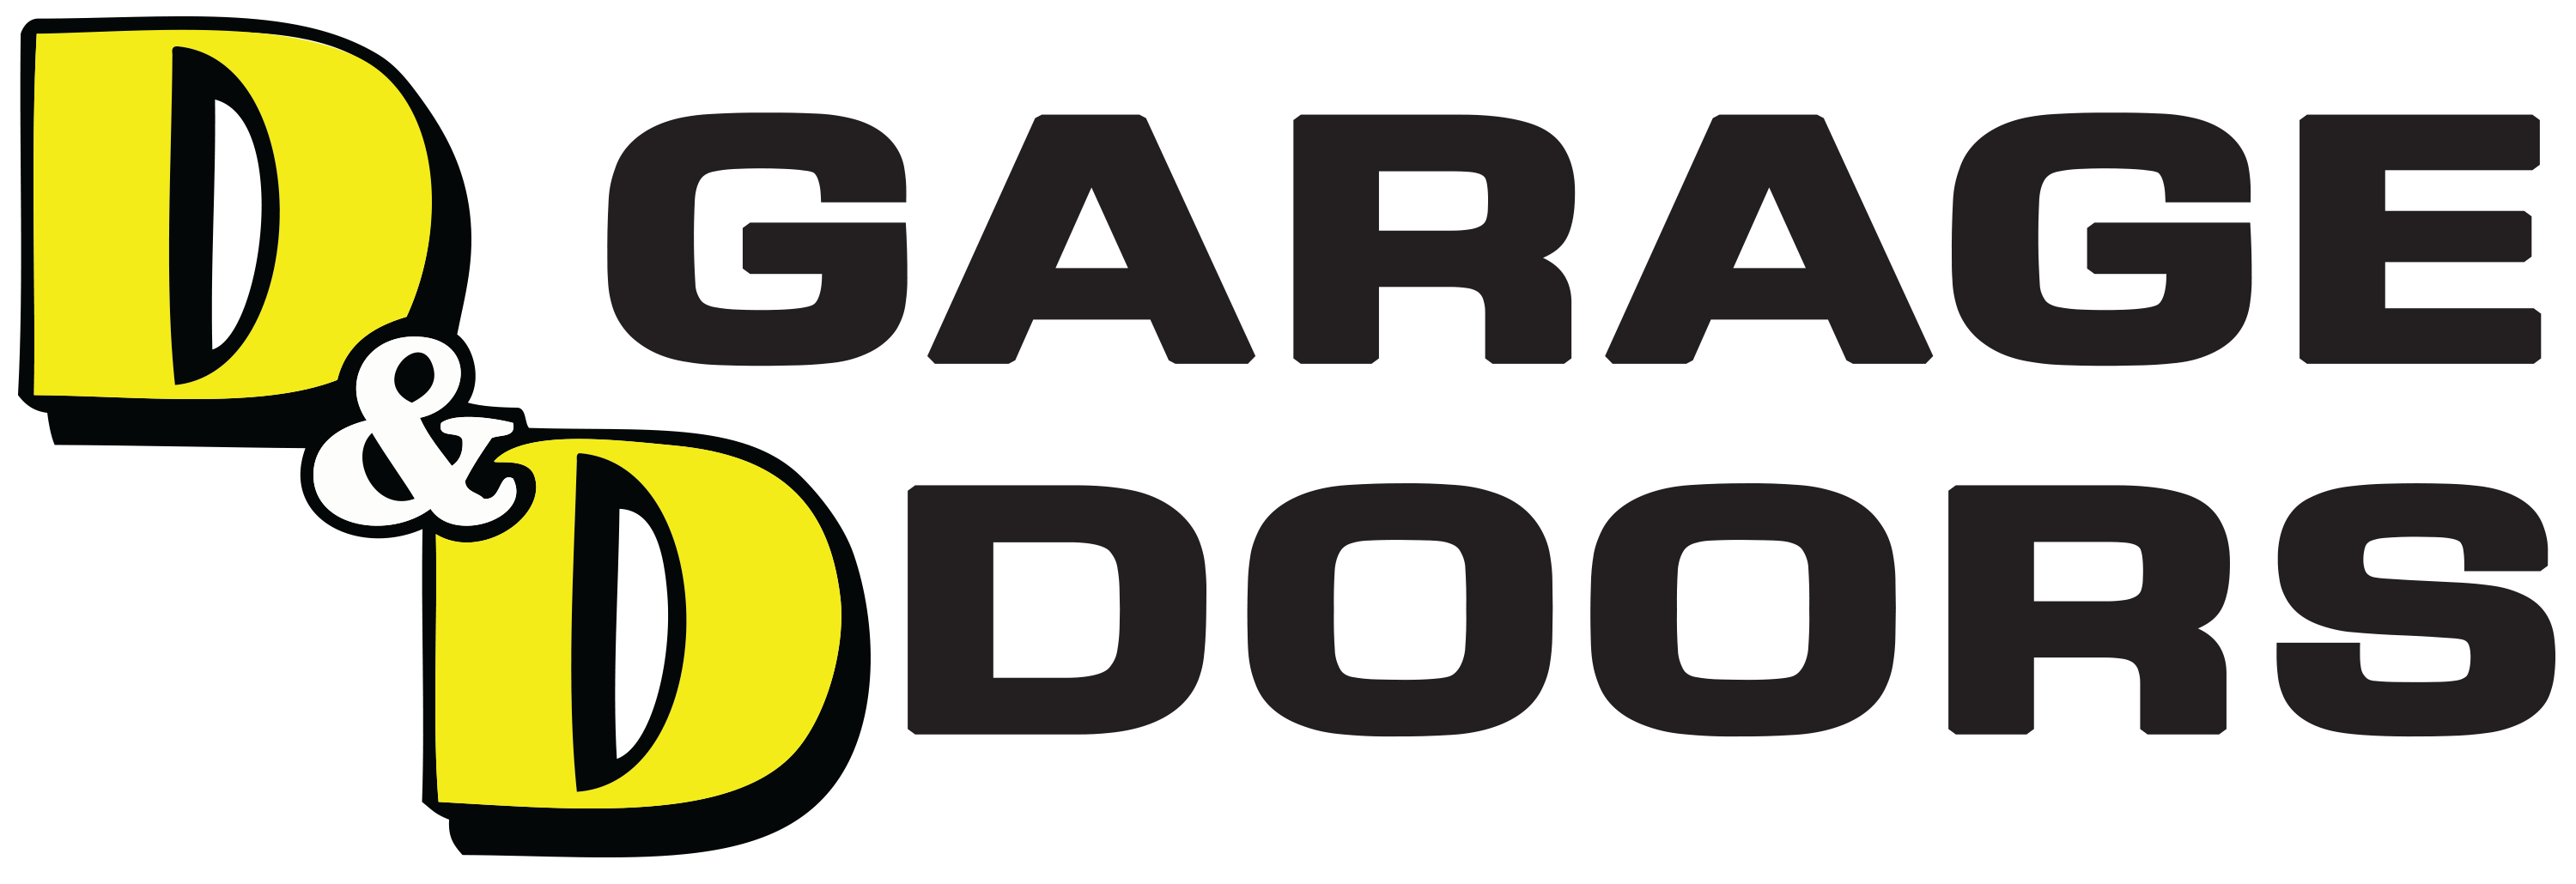 At D U0026 D Garage Doors, We Know That In Todayu0027s Age Of Technology, It Only  Makes Sense To Live Each Day With Certainty That Your Property And Home Are  Secure ...